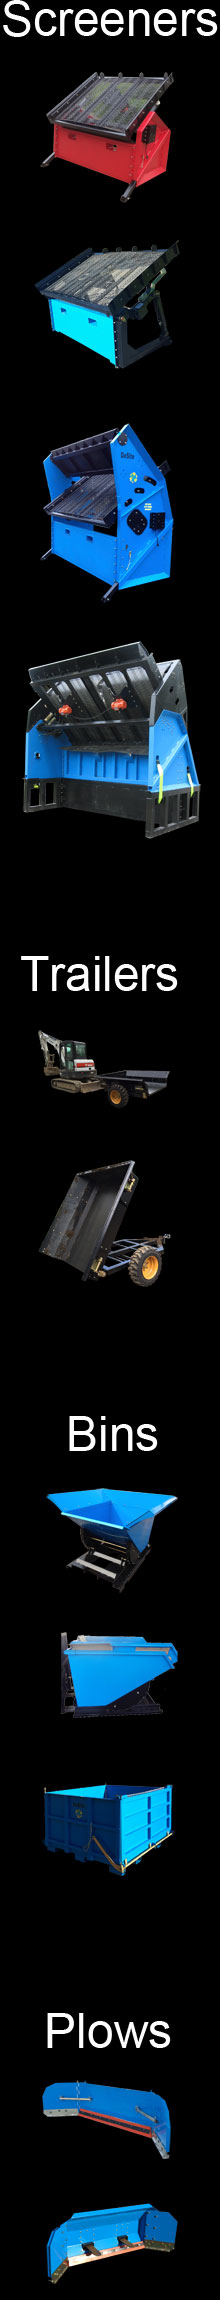 Factory financing on Soil Screeners, Dump Bins and Mini Dump Trailers.